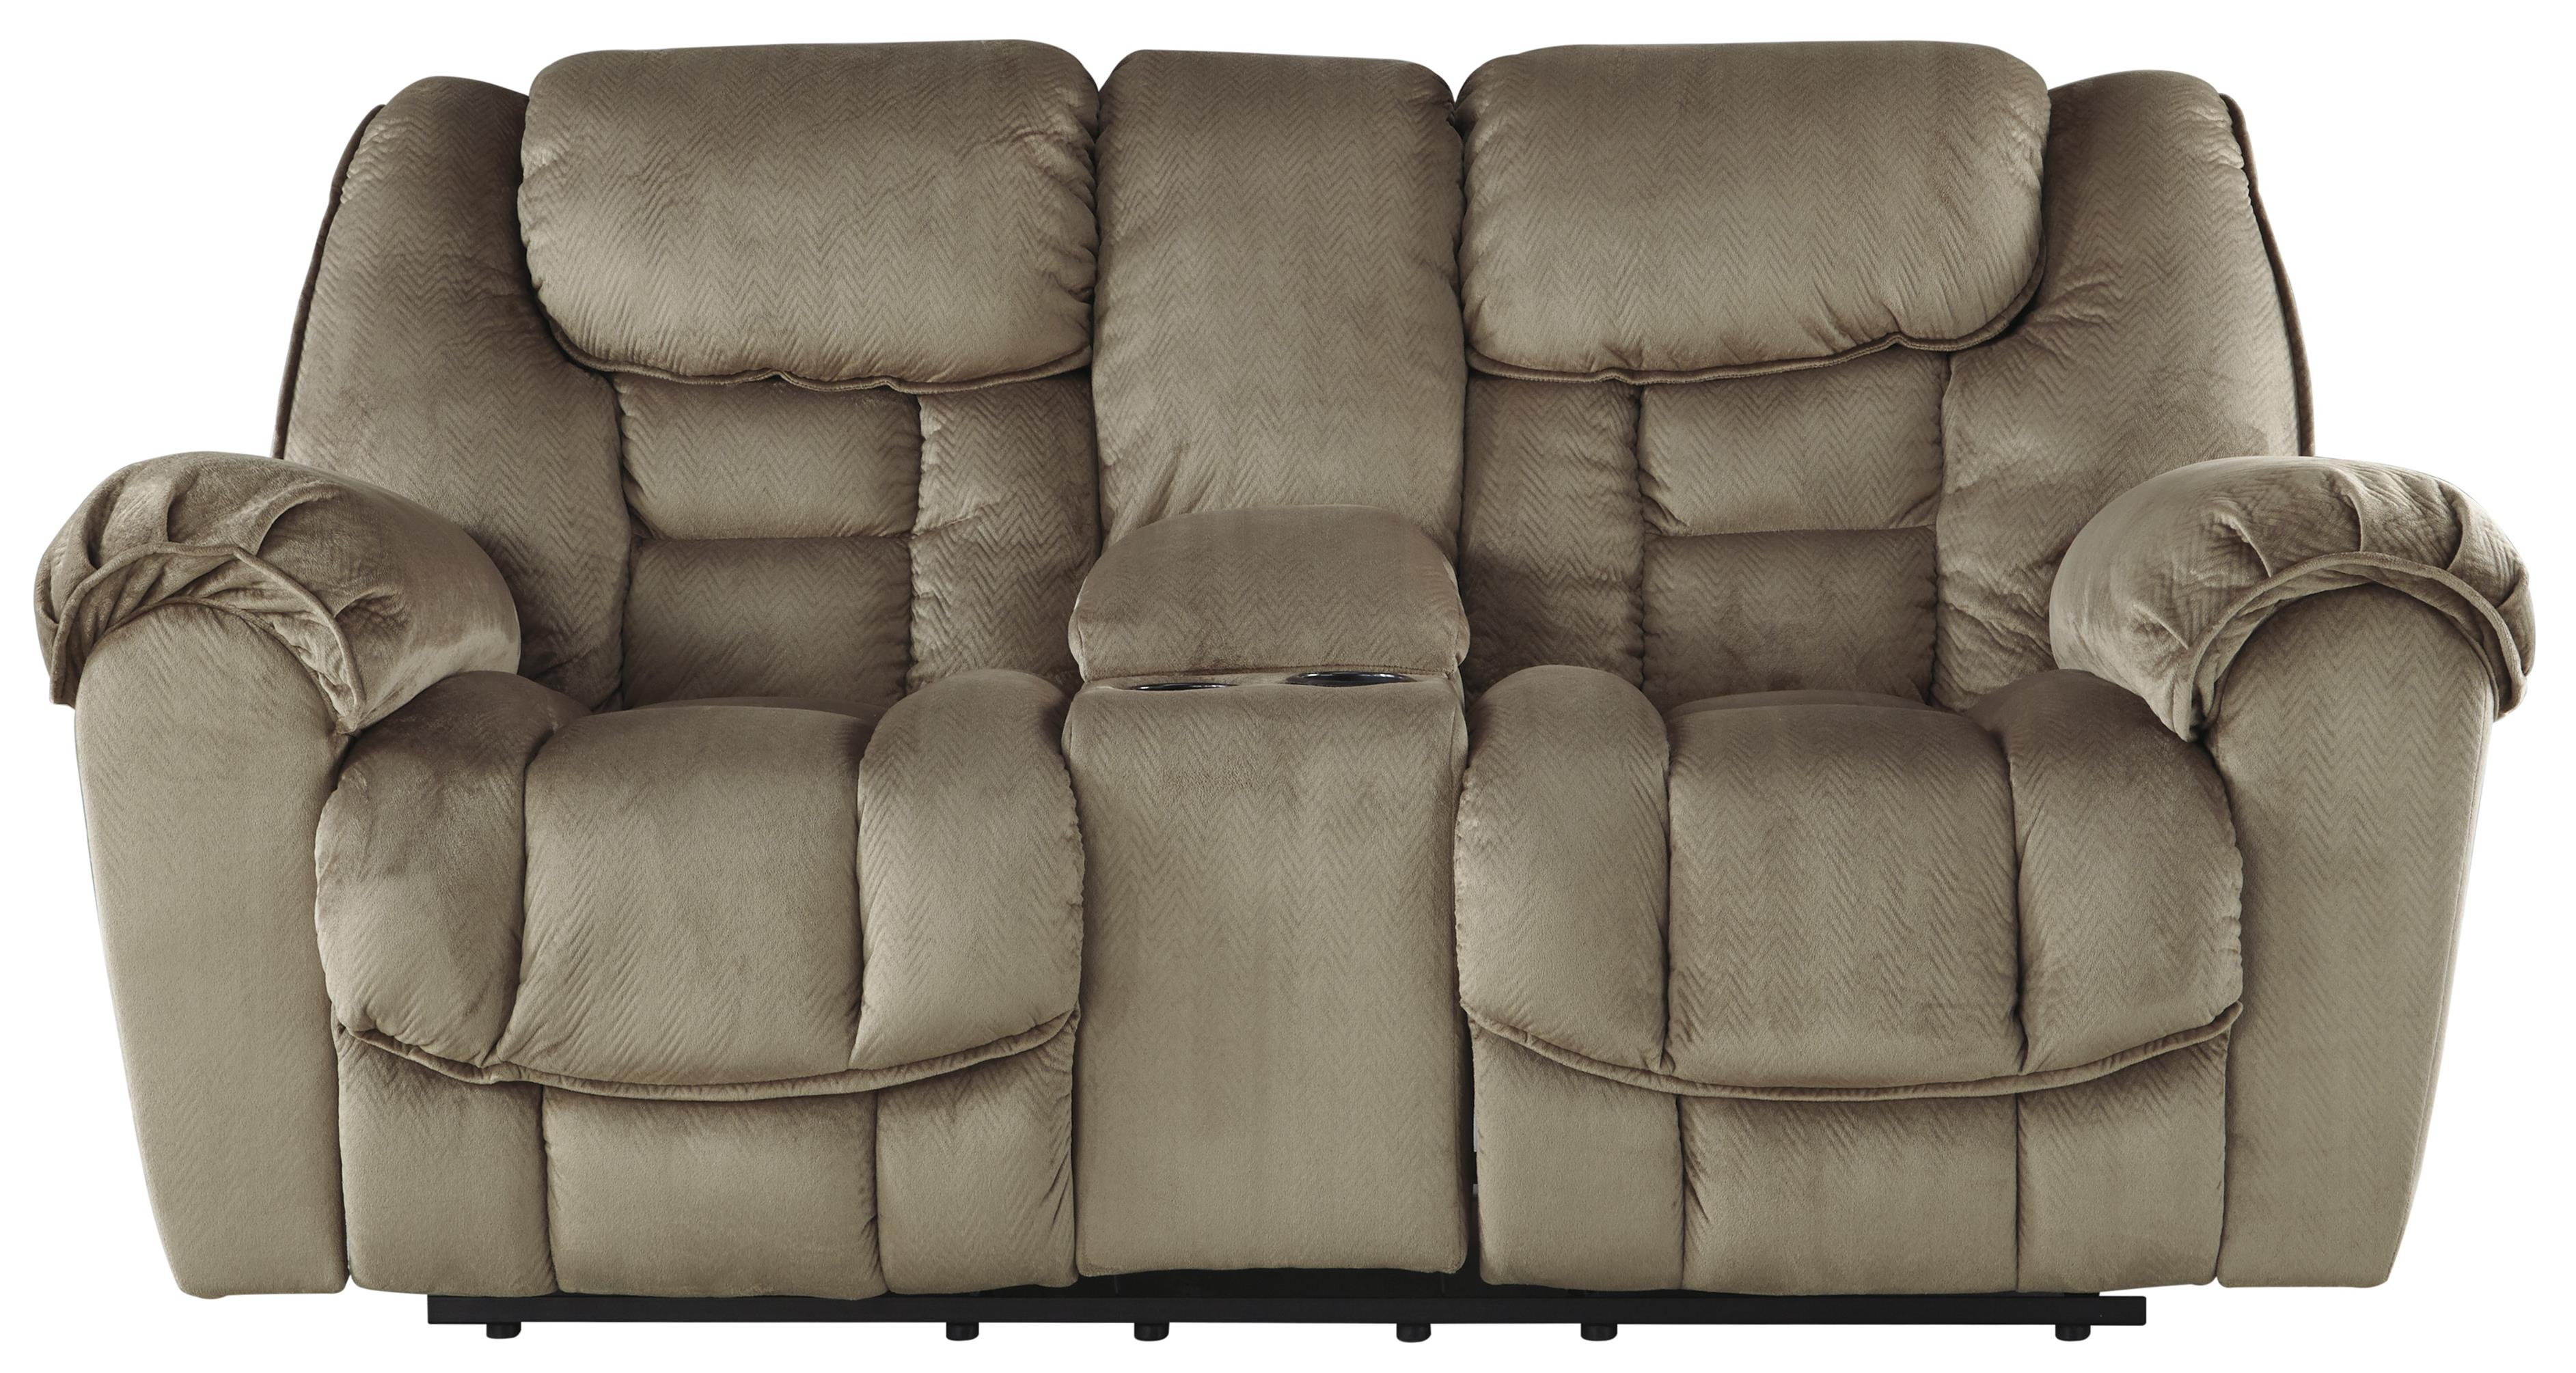 Benchcraft Jodoca Glider Recl Power Loveseat w/ Console - Item Number: 3660191